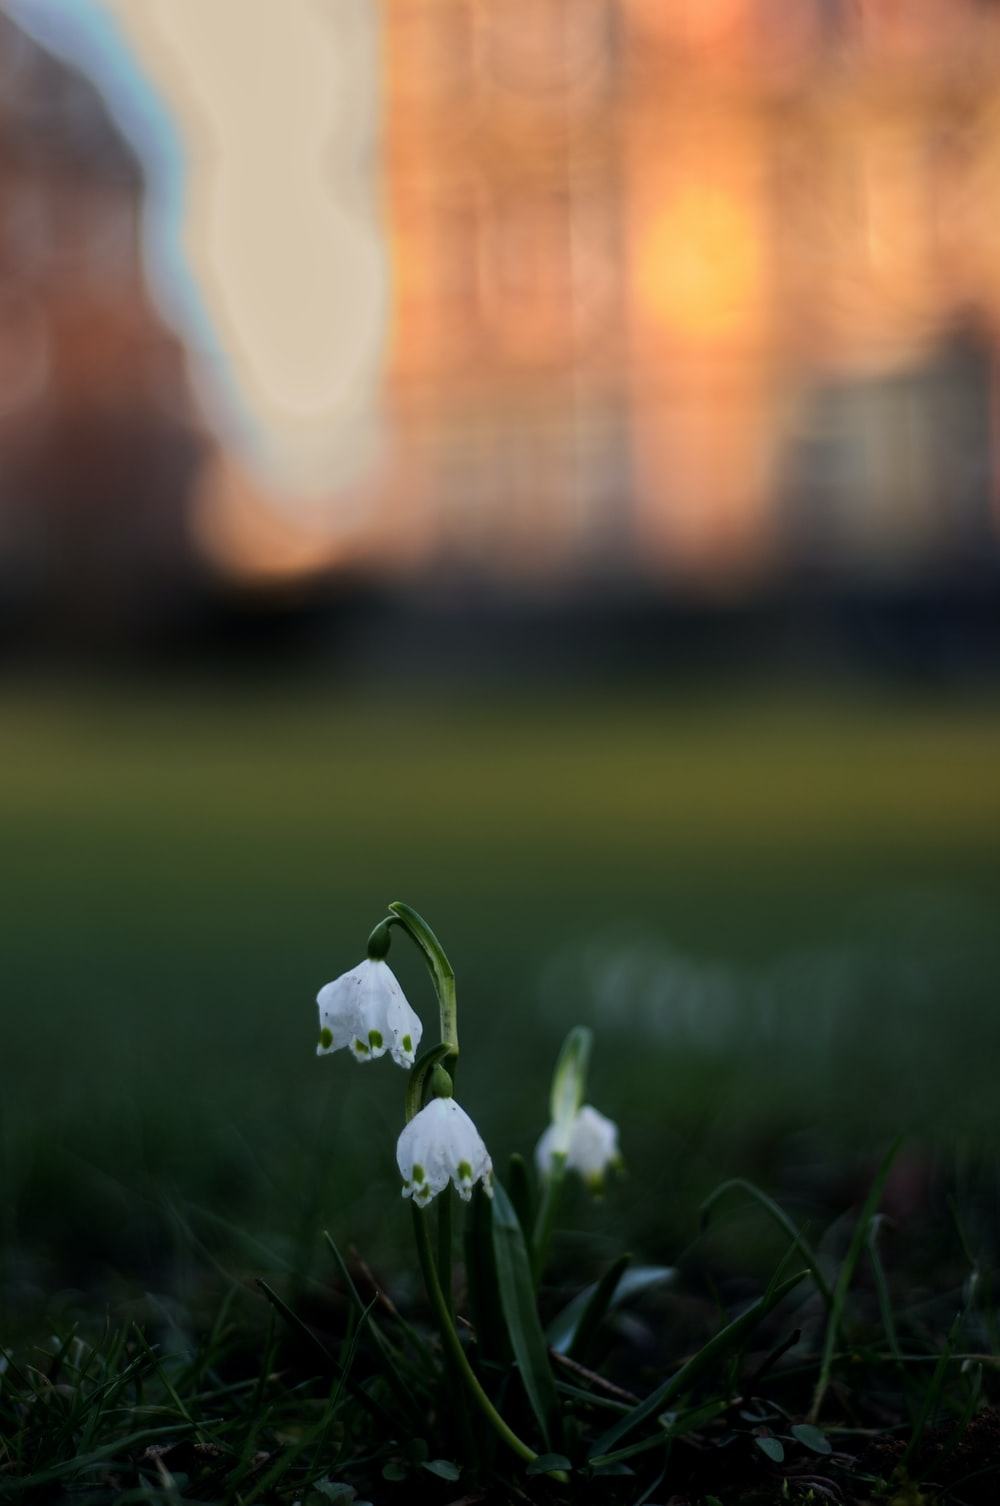 white flowers on green grass field during daytime